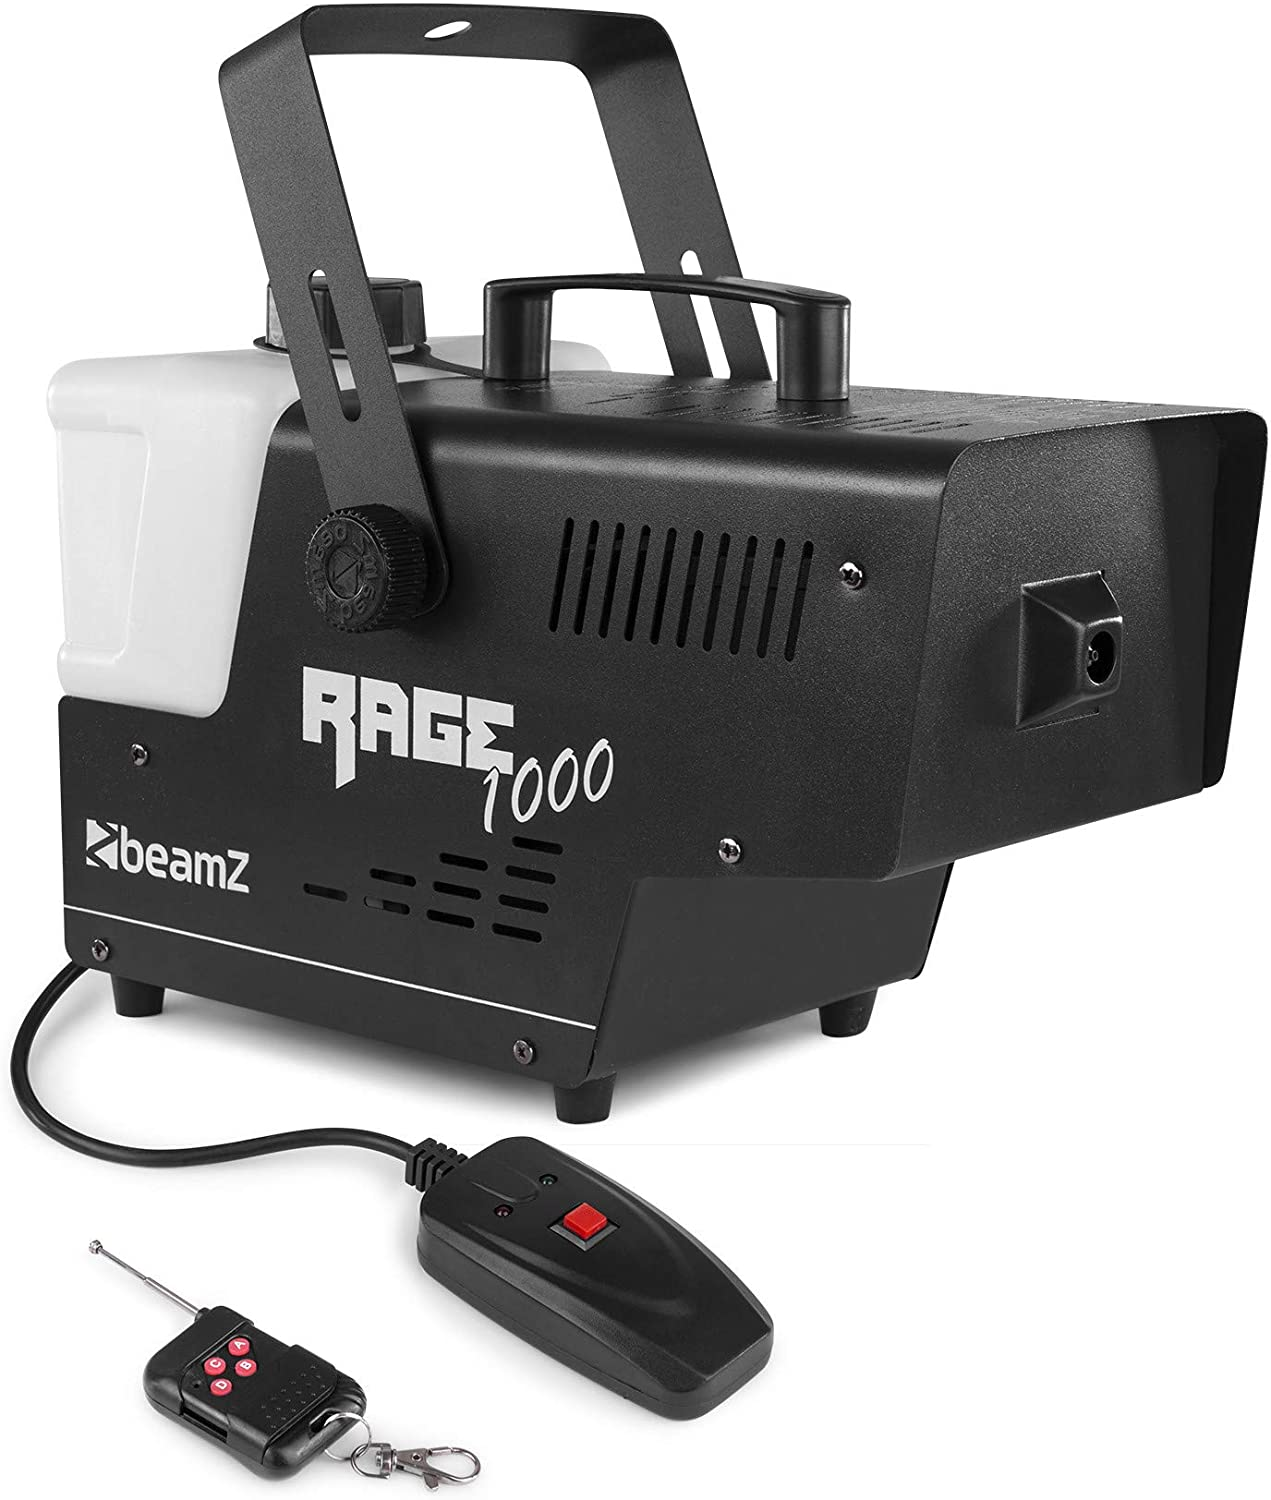 BeamZ Rage 1000 Smoke machine 2 L Negro, Blanco 1000 W - Máquina de humo (1000 W, 220-240 V, 50 Hz, 170 mm, 360 mm, 225 mm)